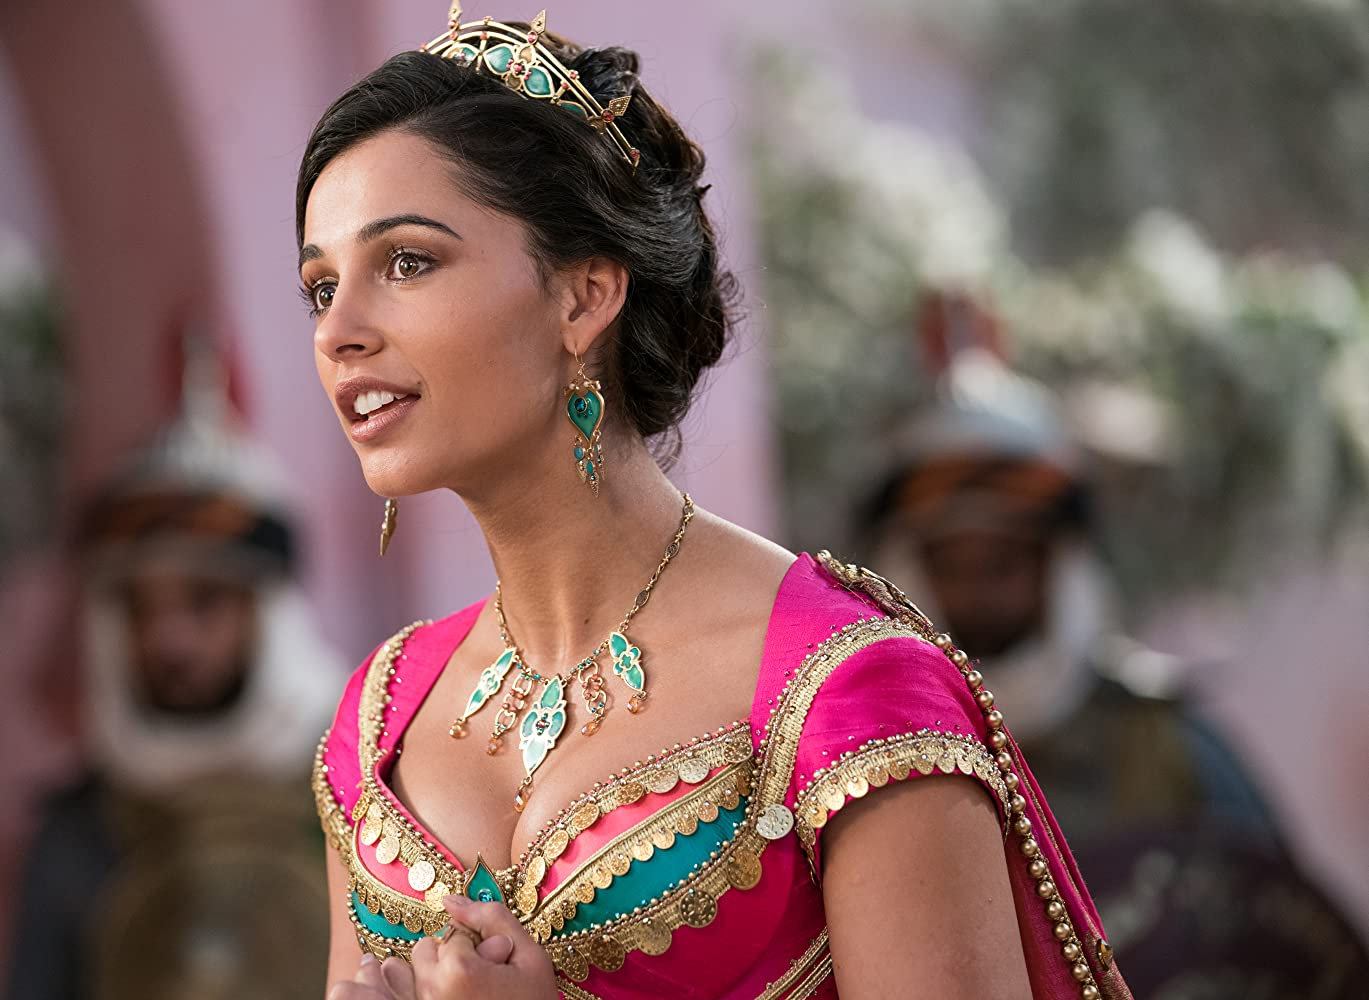 Naomi Scott in Aladdin (2019)